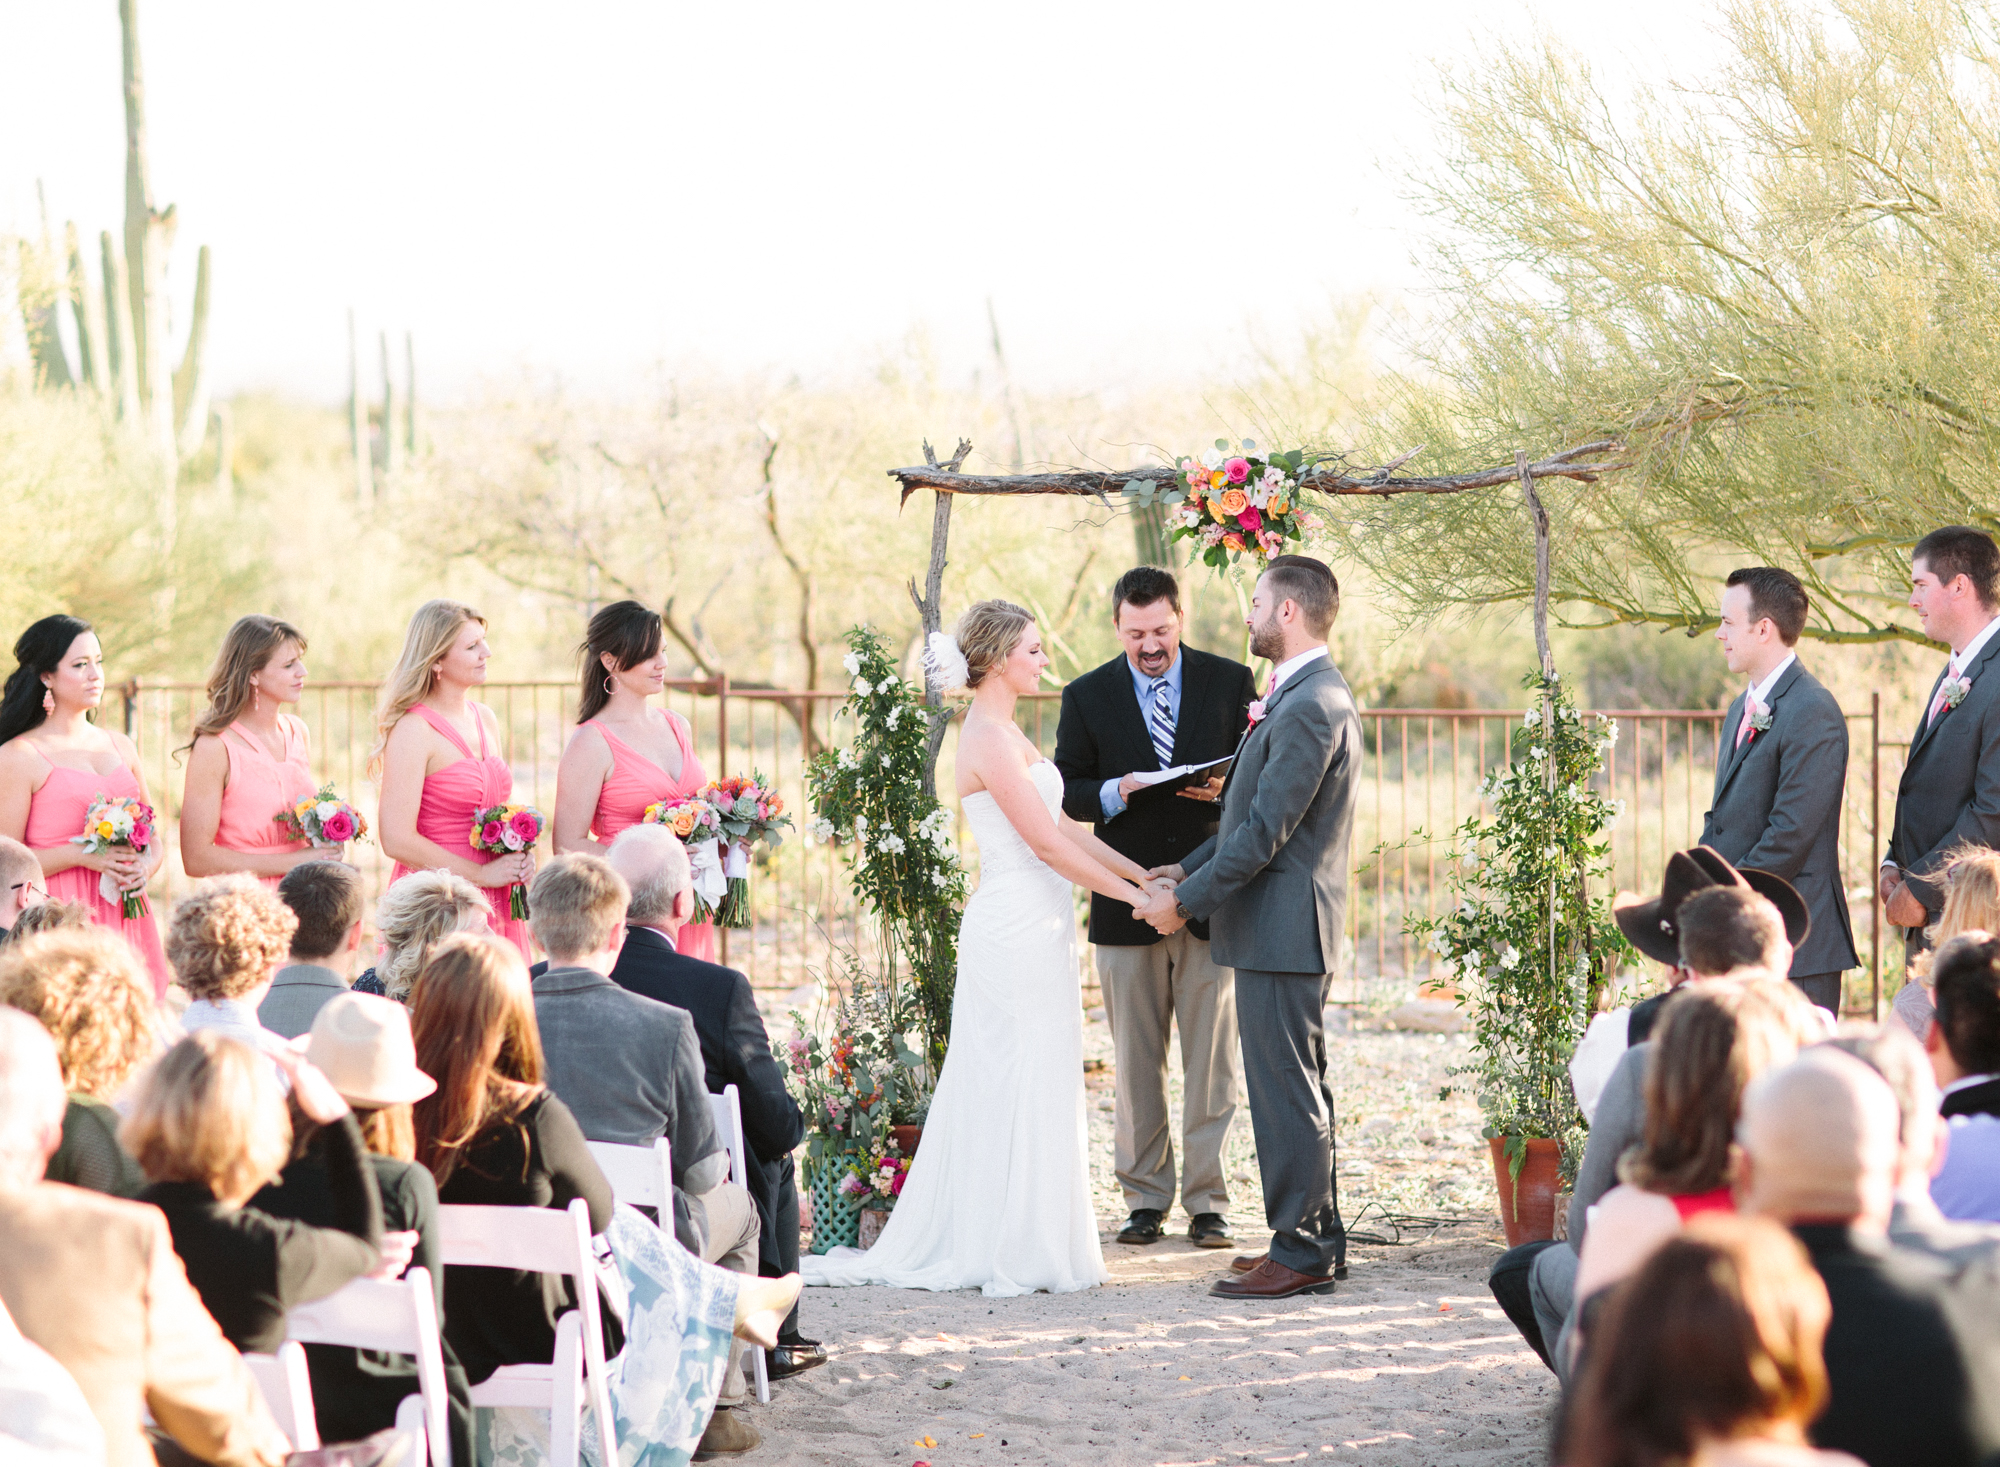 Desert wedding, bride and groom at the alter